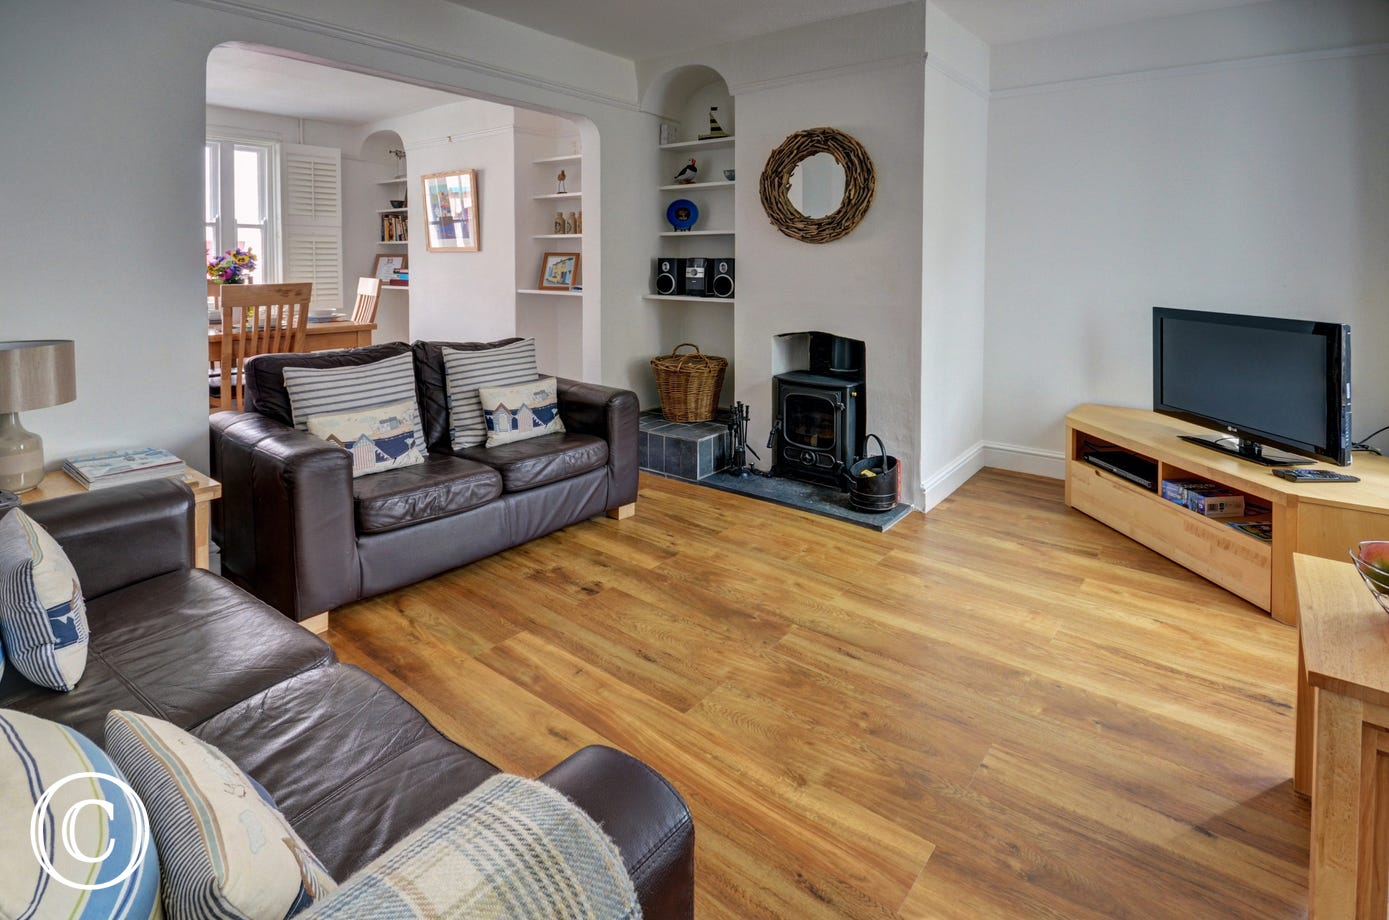 Enjoy underfloor heating and cosy woodburner in the sitting room